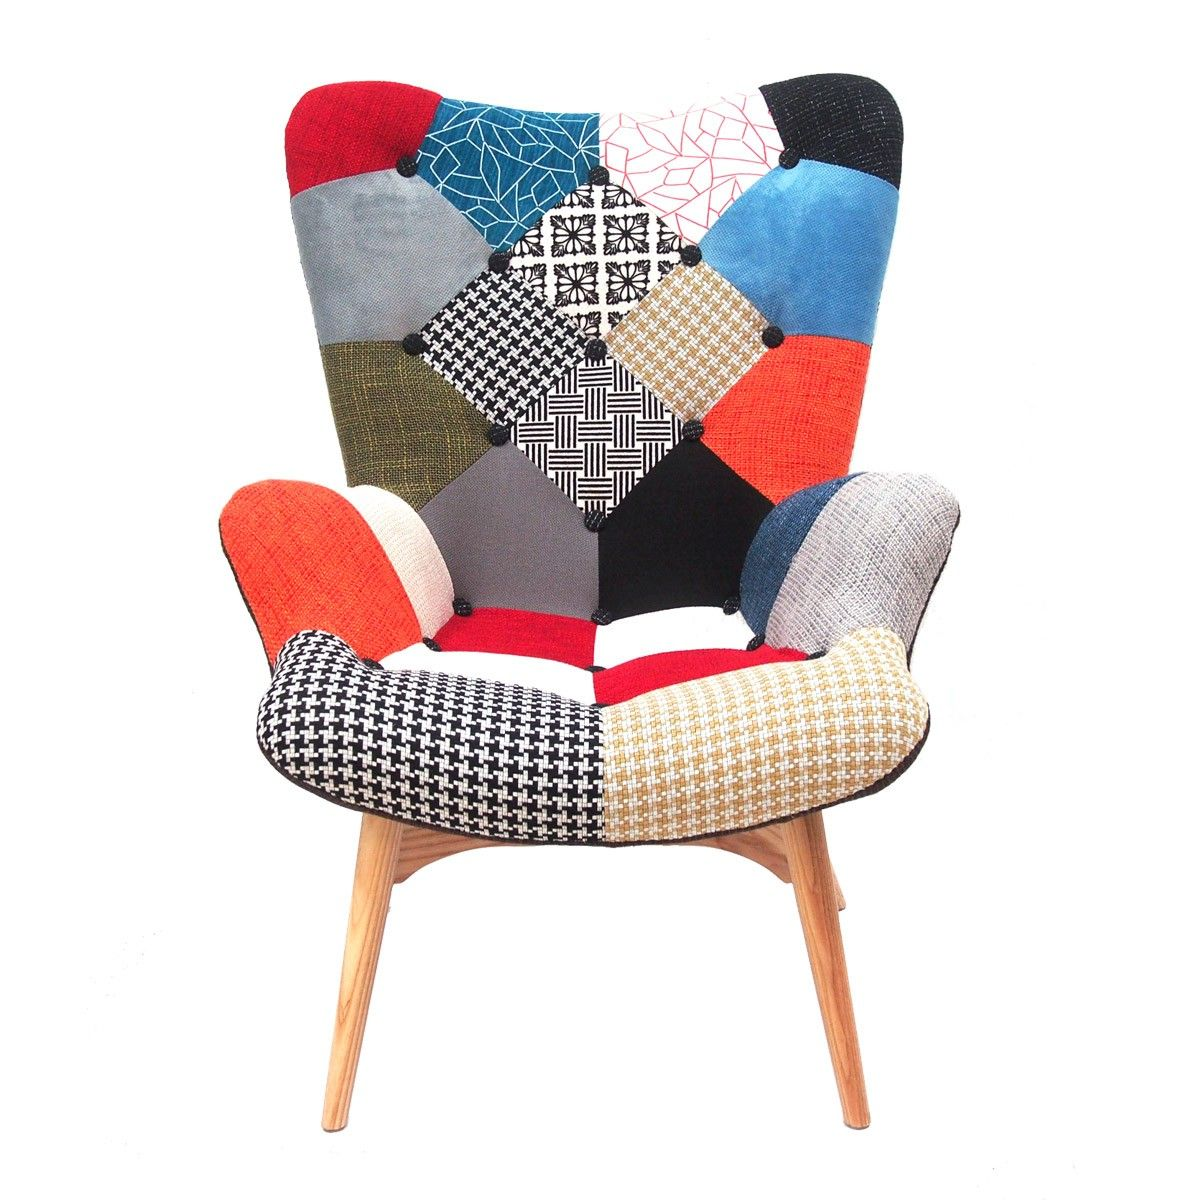 Replica Grant Featherston Patchwork Contour Chair